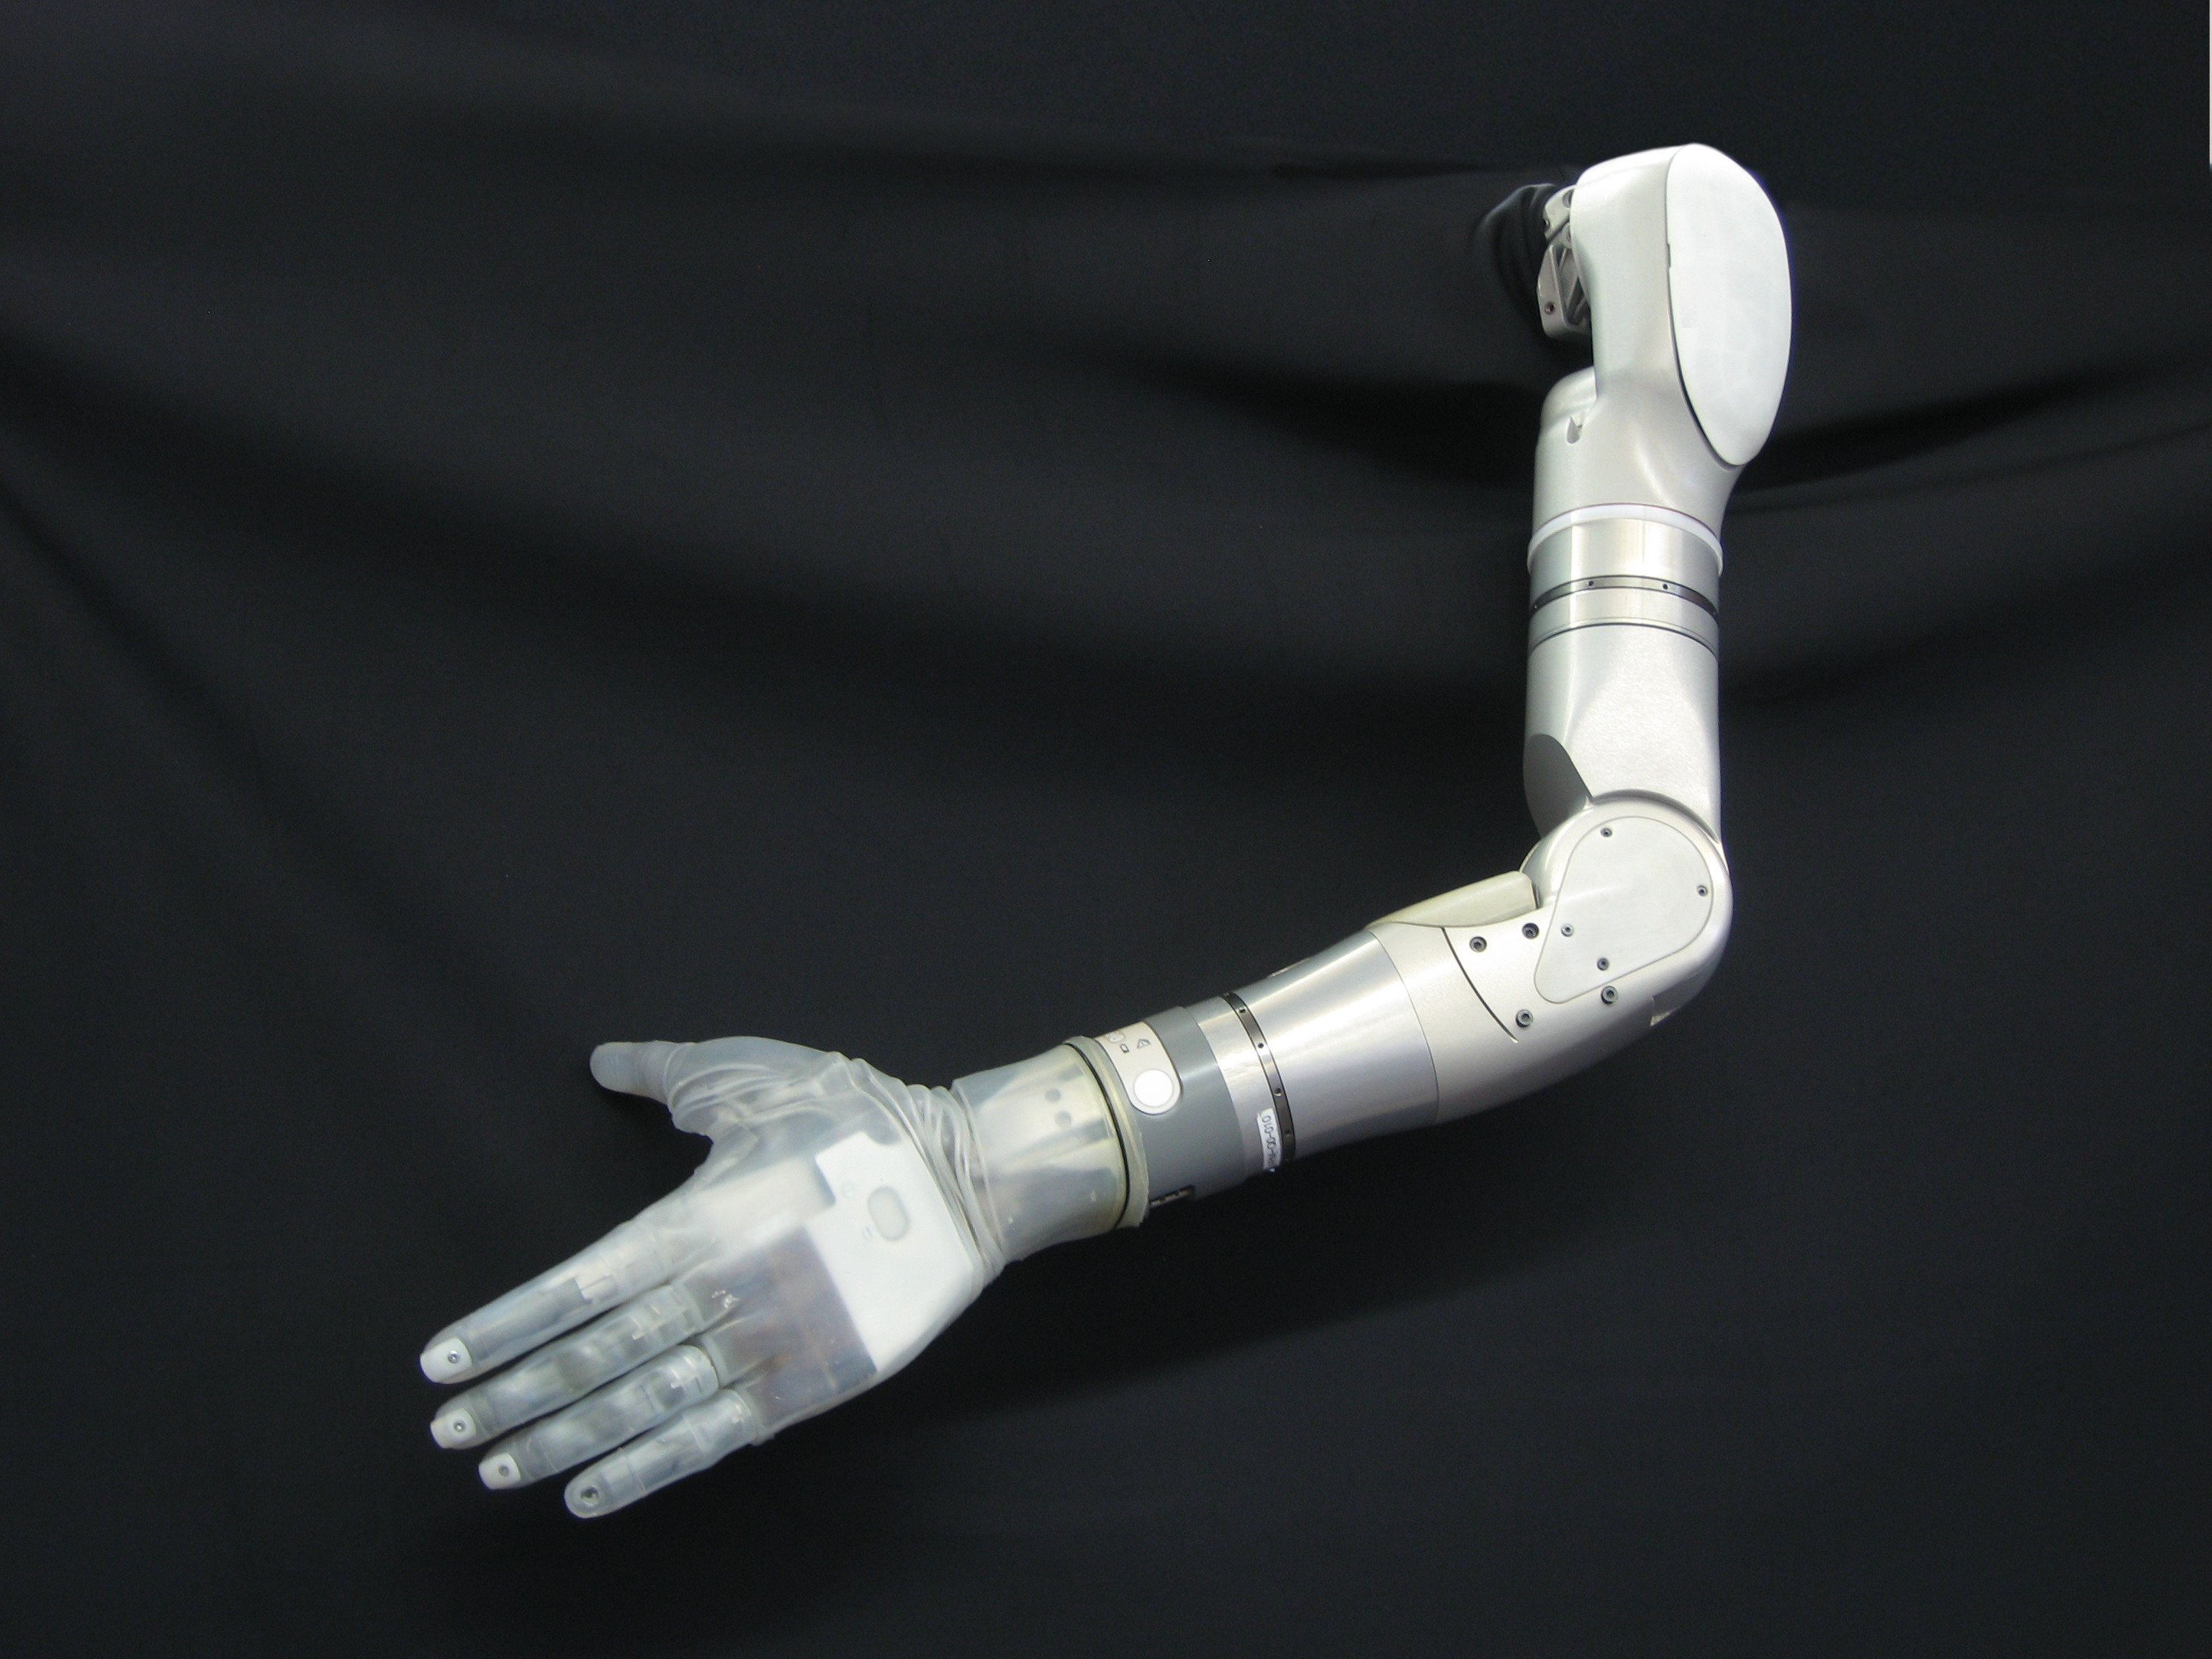 The DEKA Arm is modular, so it can serve